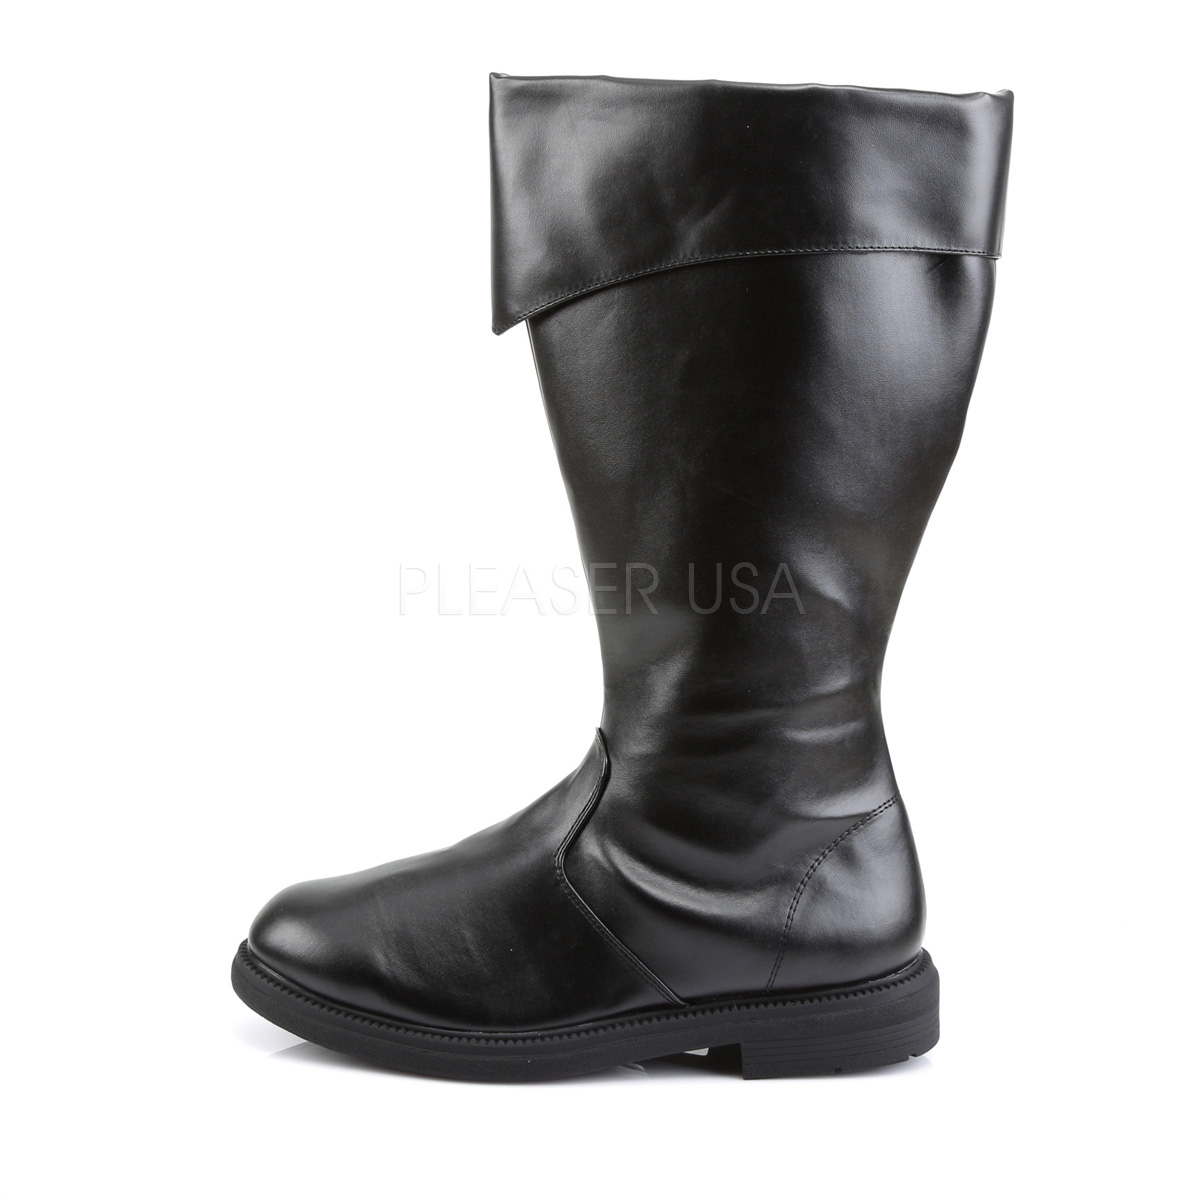 Funtasma CAPTAIN-105 1inch Heel, Pirate Captain #Men's Knee BT◆取り寄せ